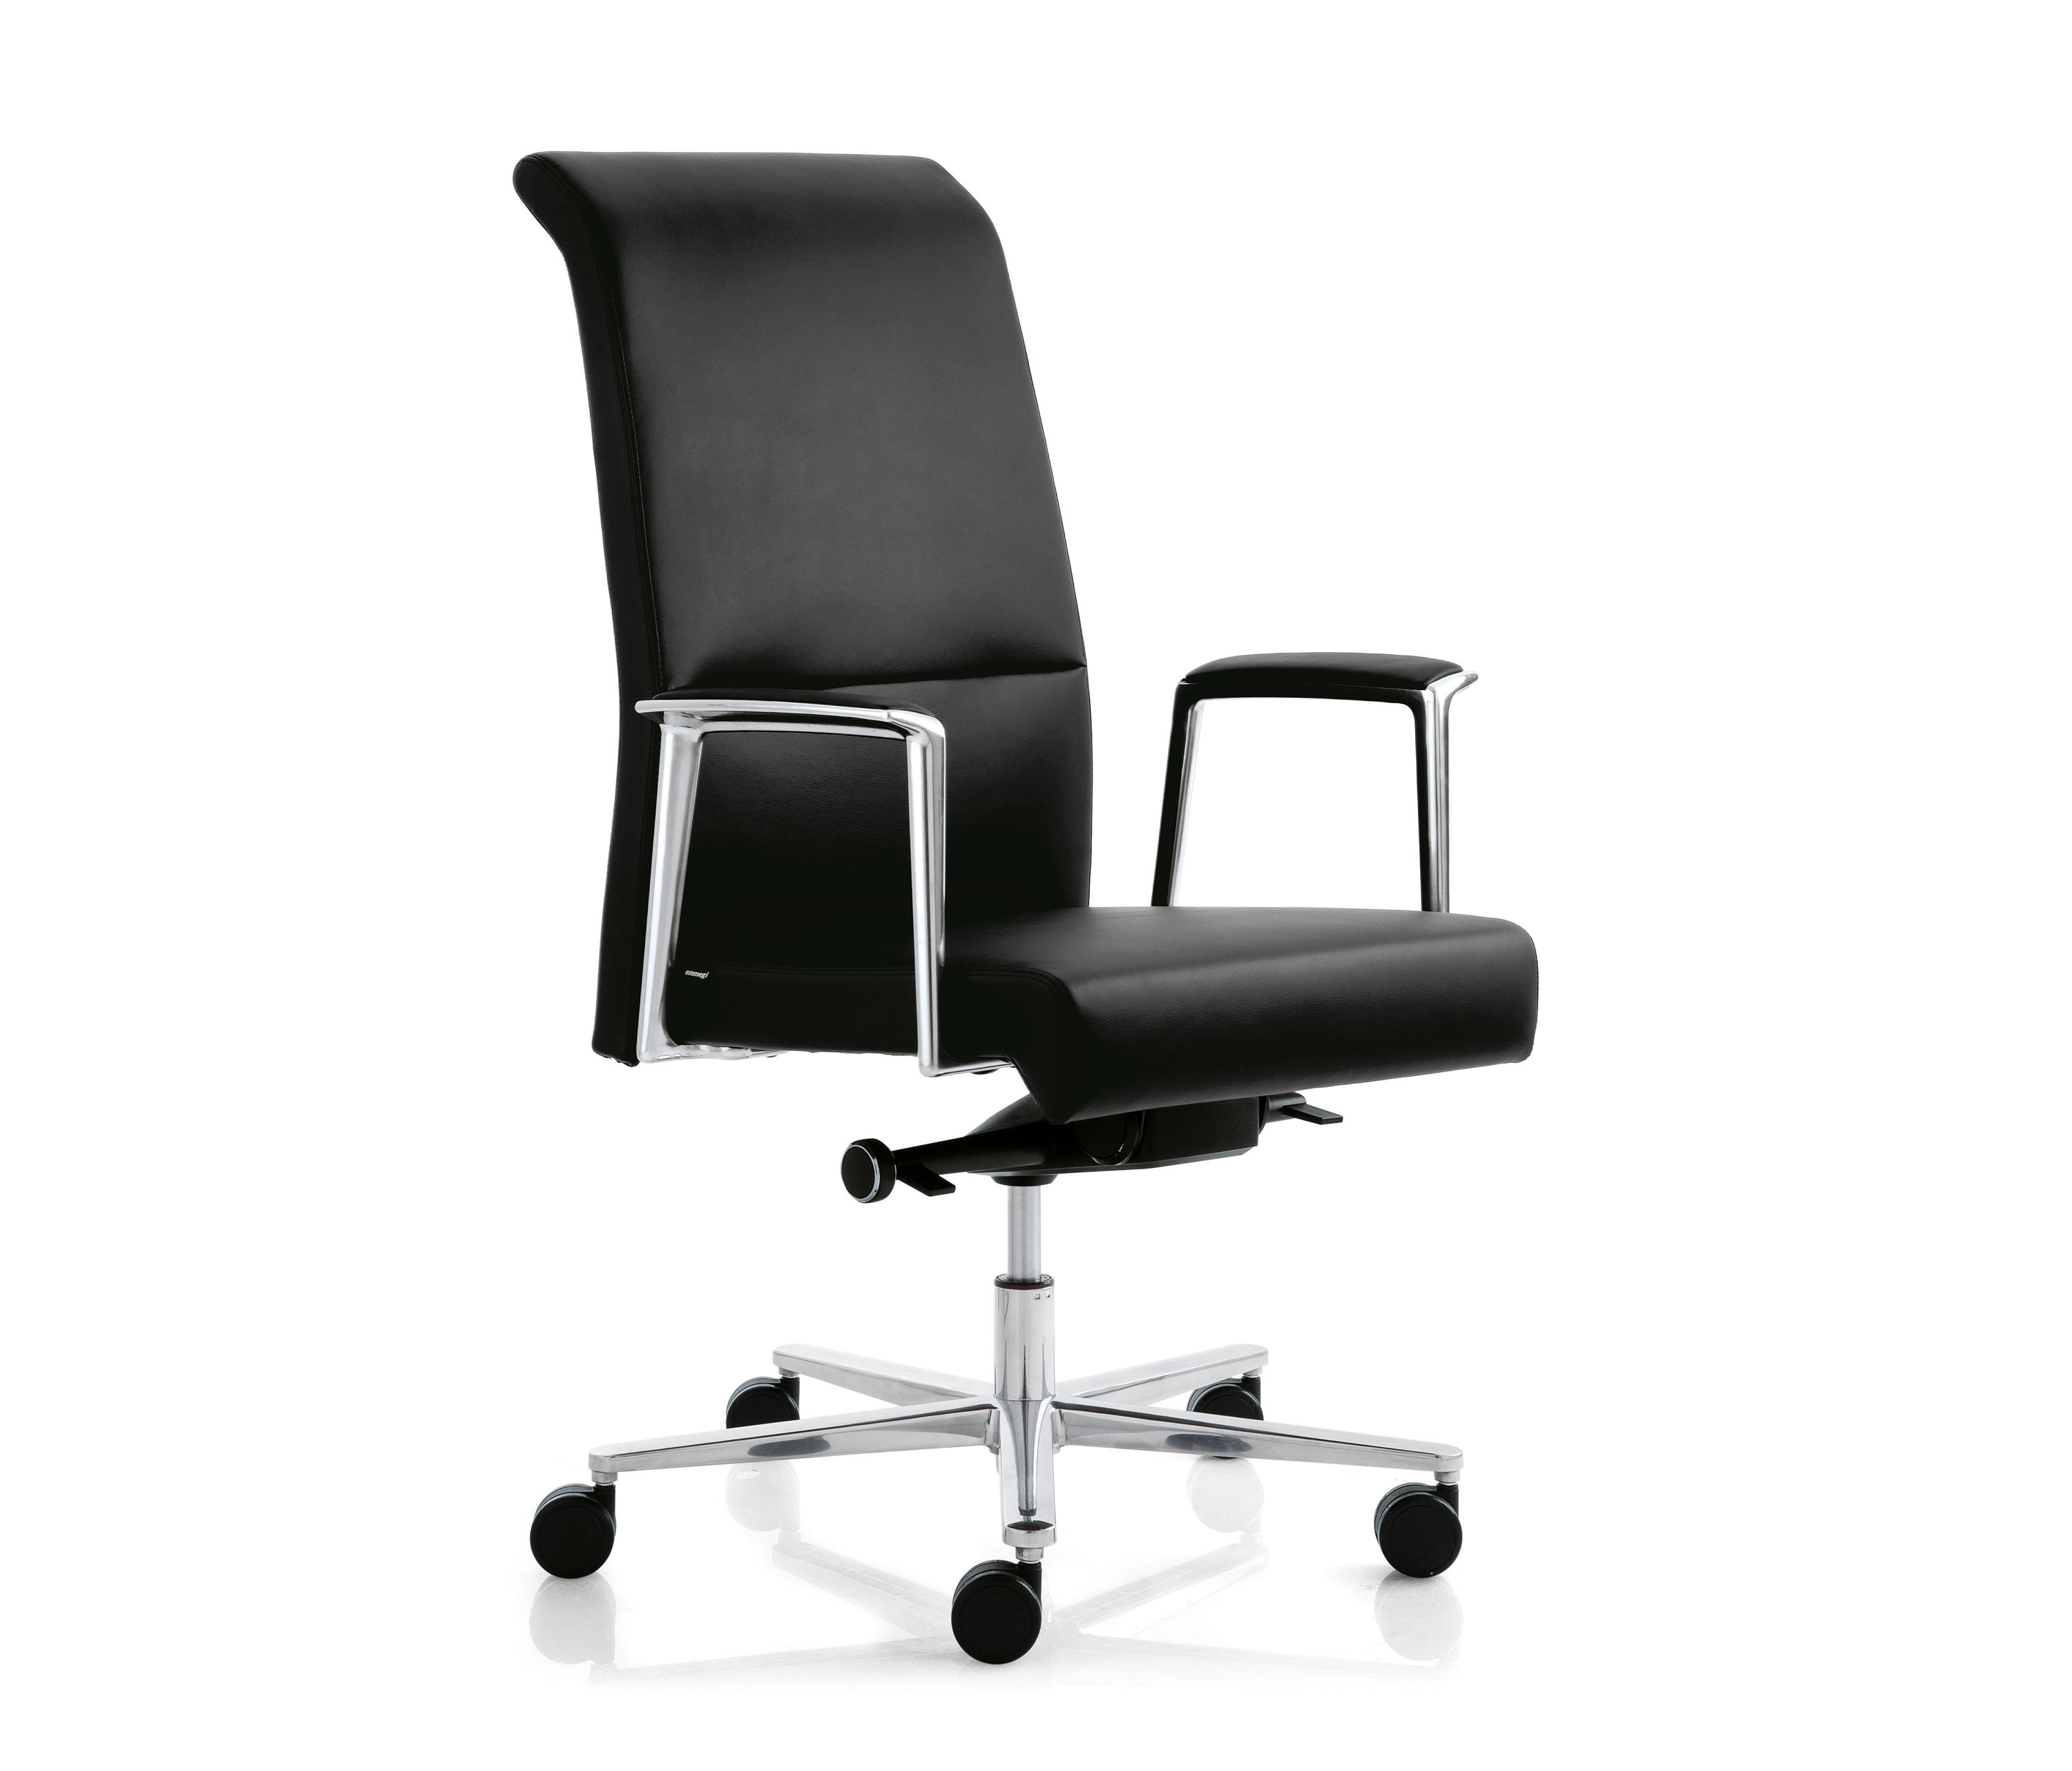 Office Chairs Office Max Max Office Chairs From Emmegi Architonic